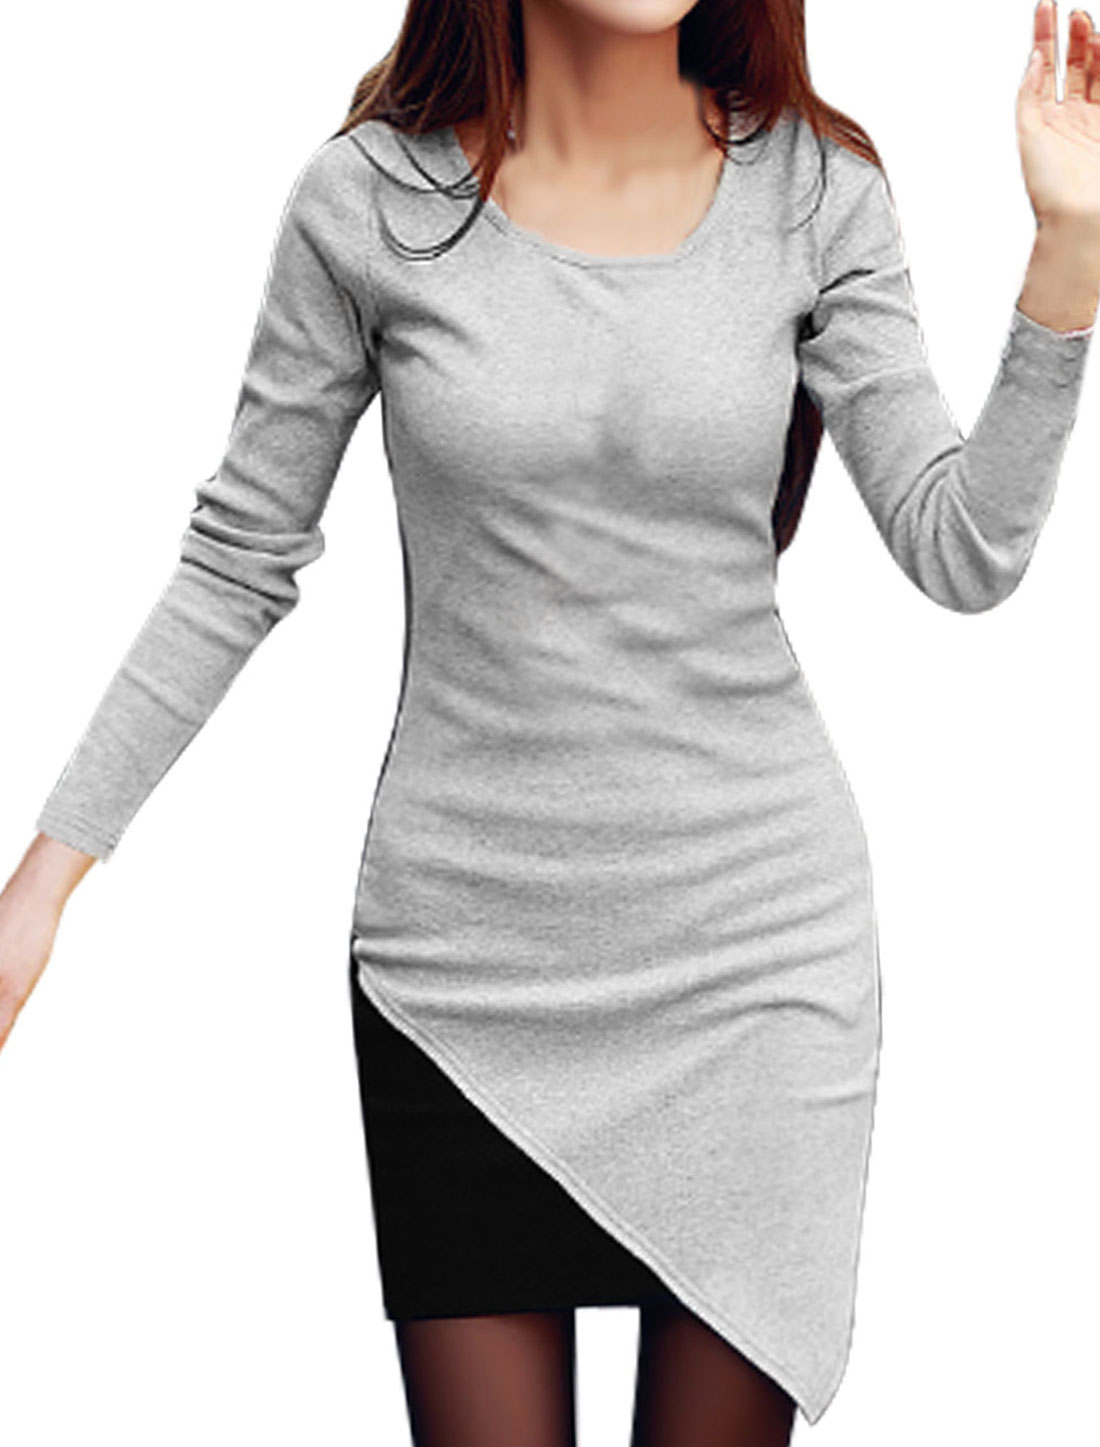 Woman Contrast Color Full Sleeve Pullover Light Gray Sheath Dress M